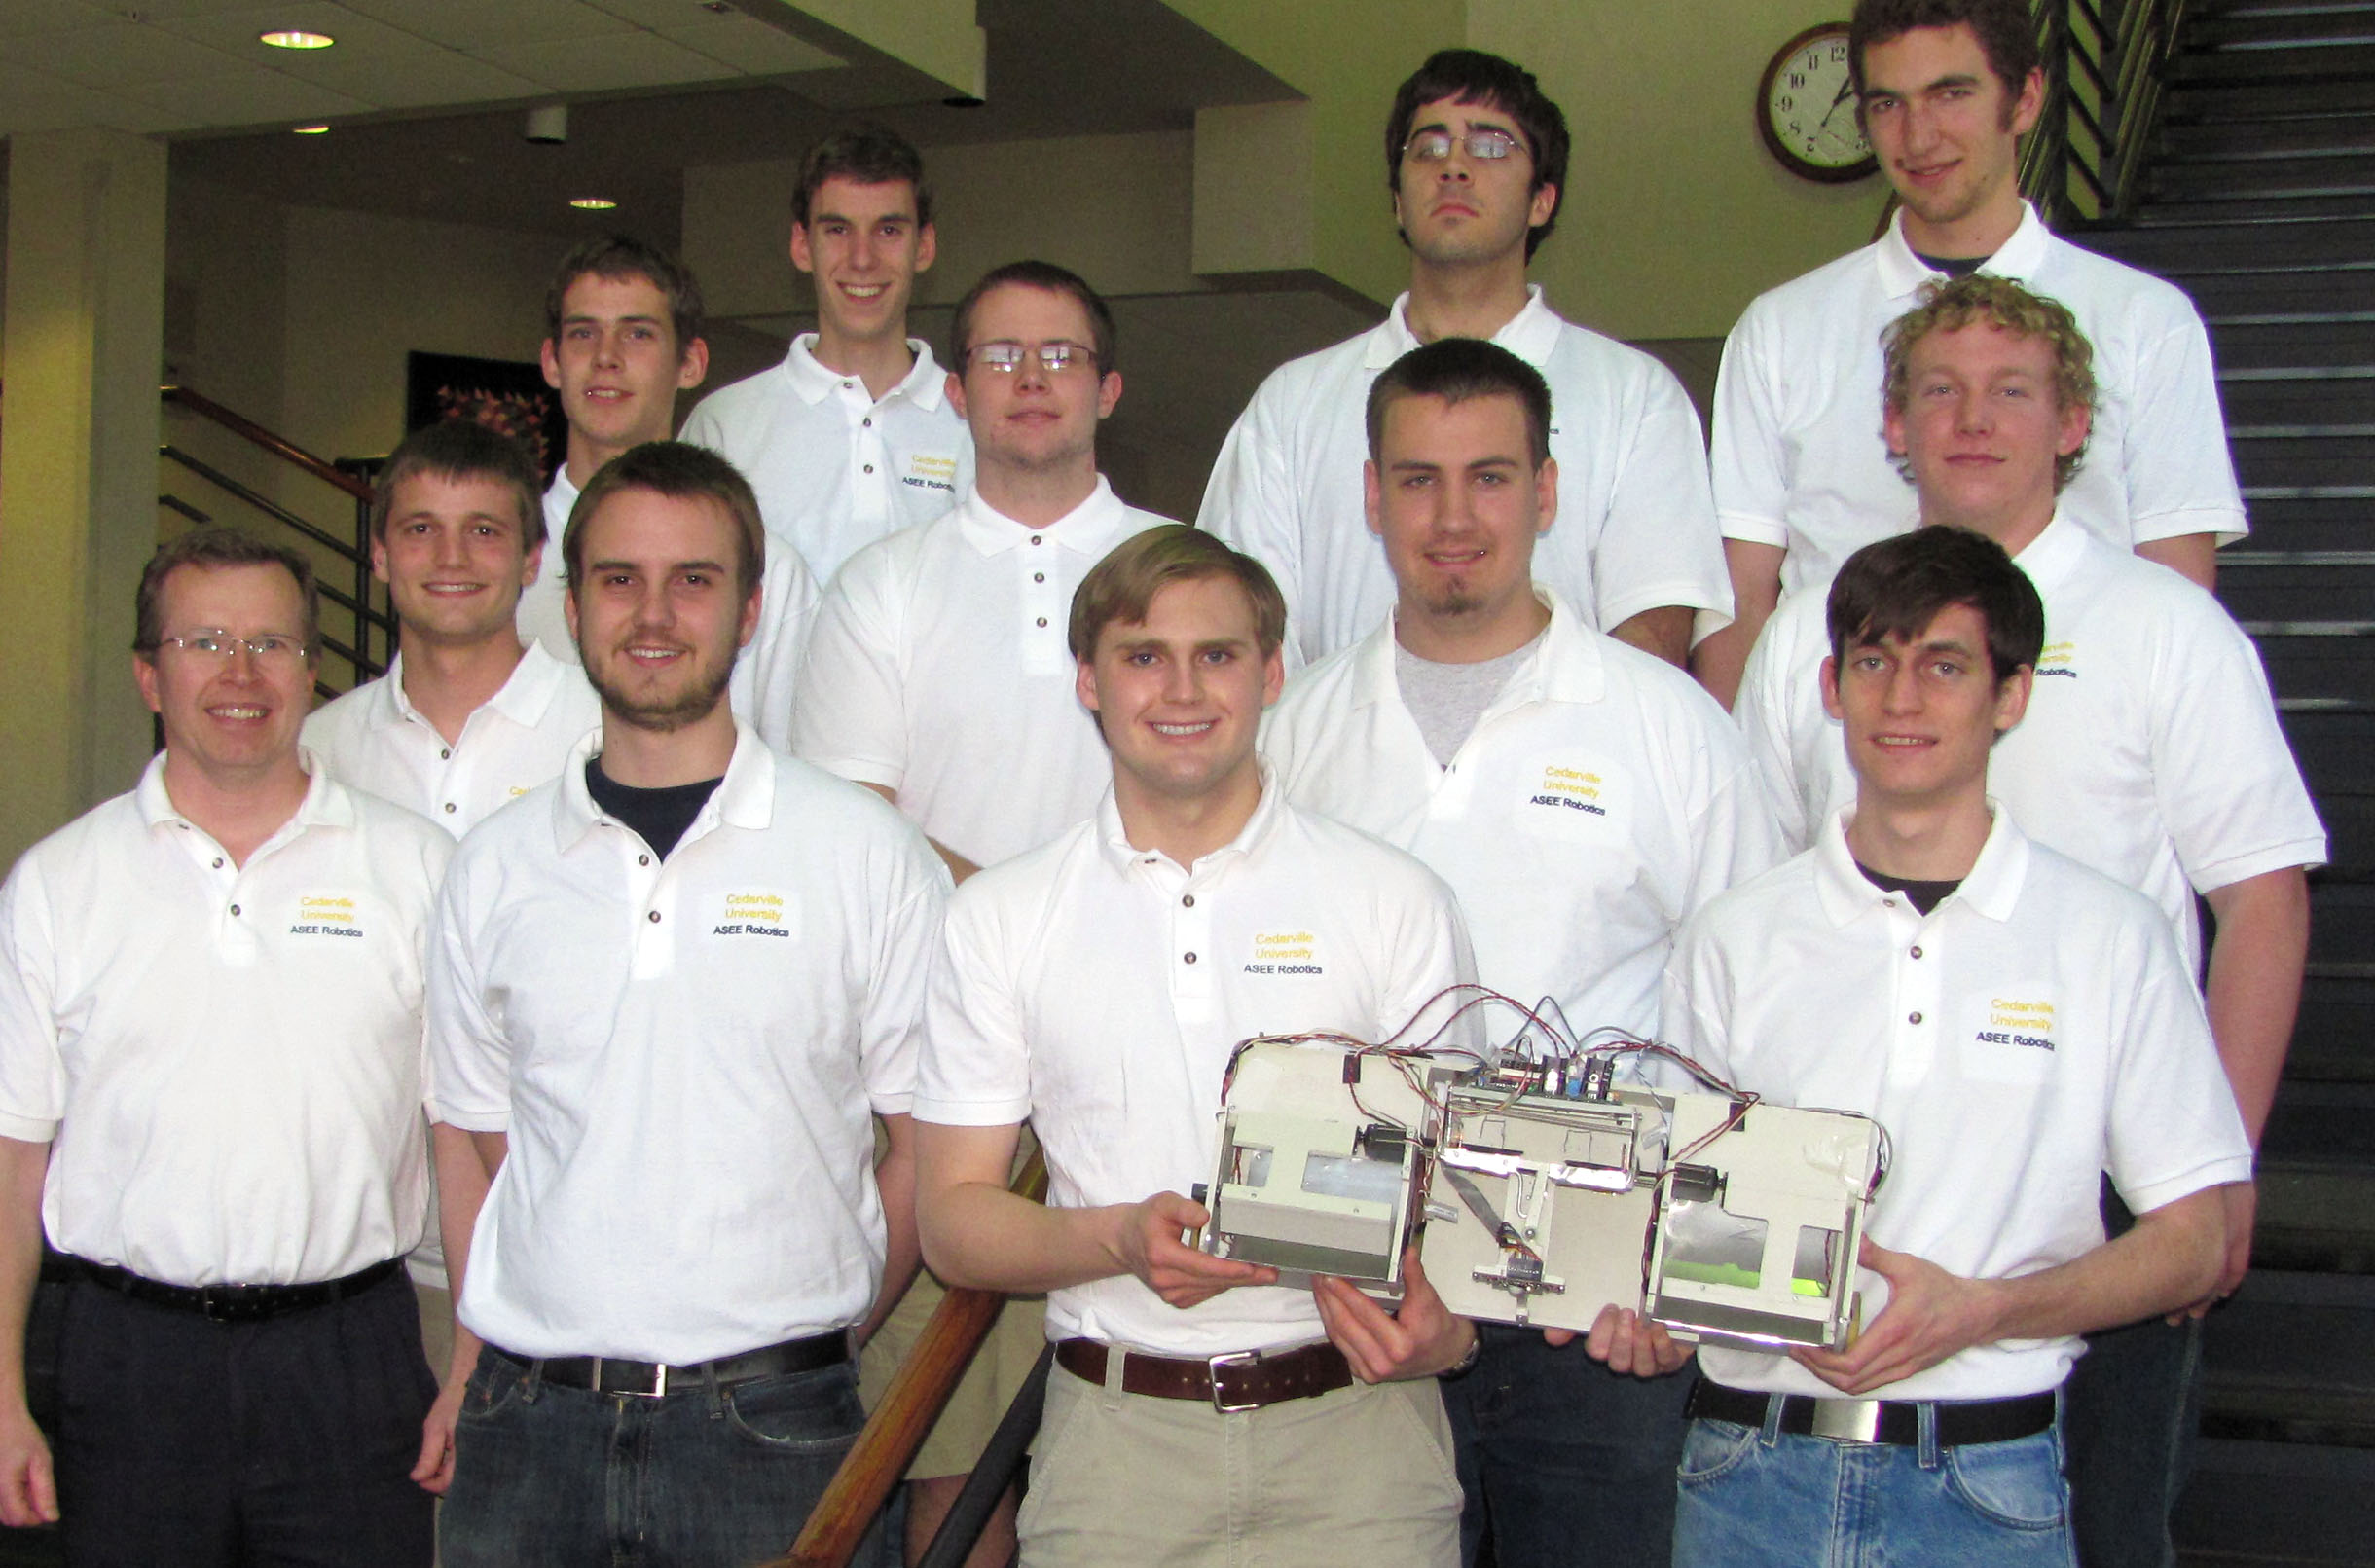 Cedarville's team of engineering students won first place at the American Society of Engineering Education (ASEE) Autonomous Robotics Competition. Photo courtesy of Sue Helmick.